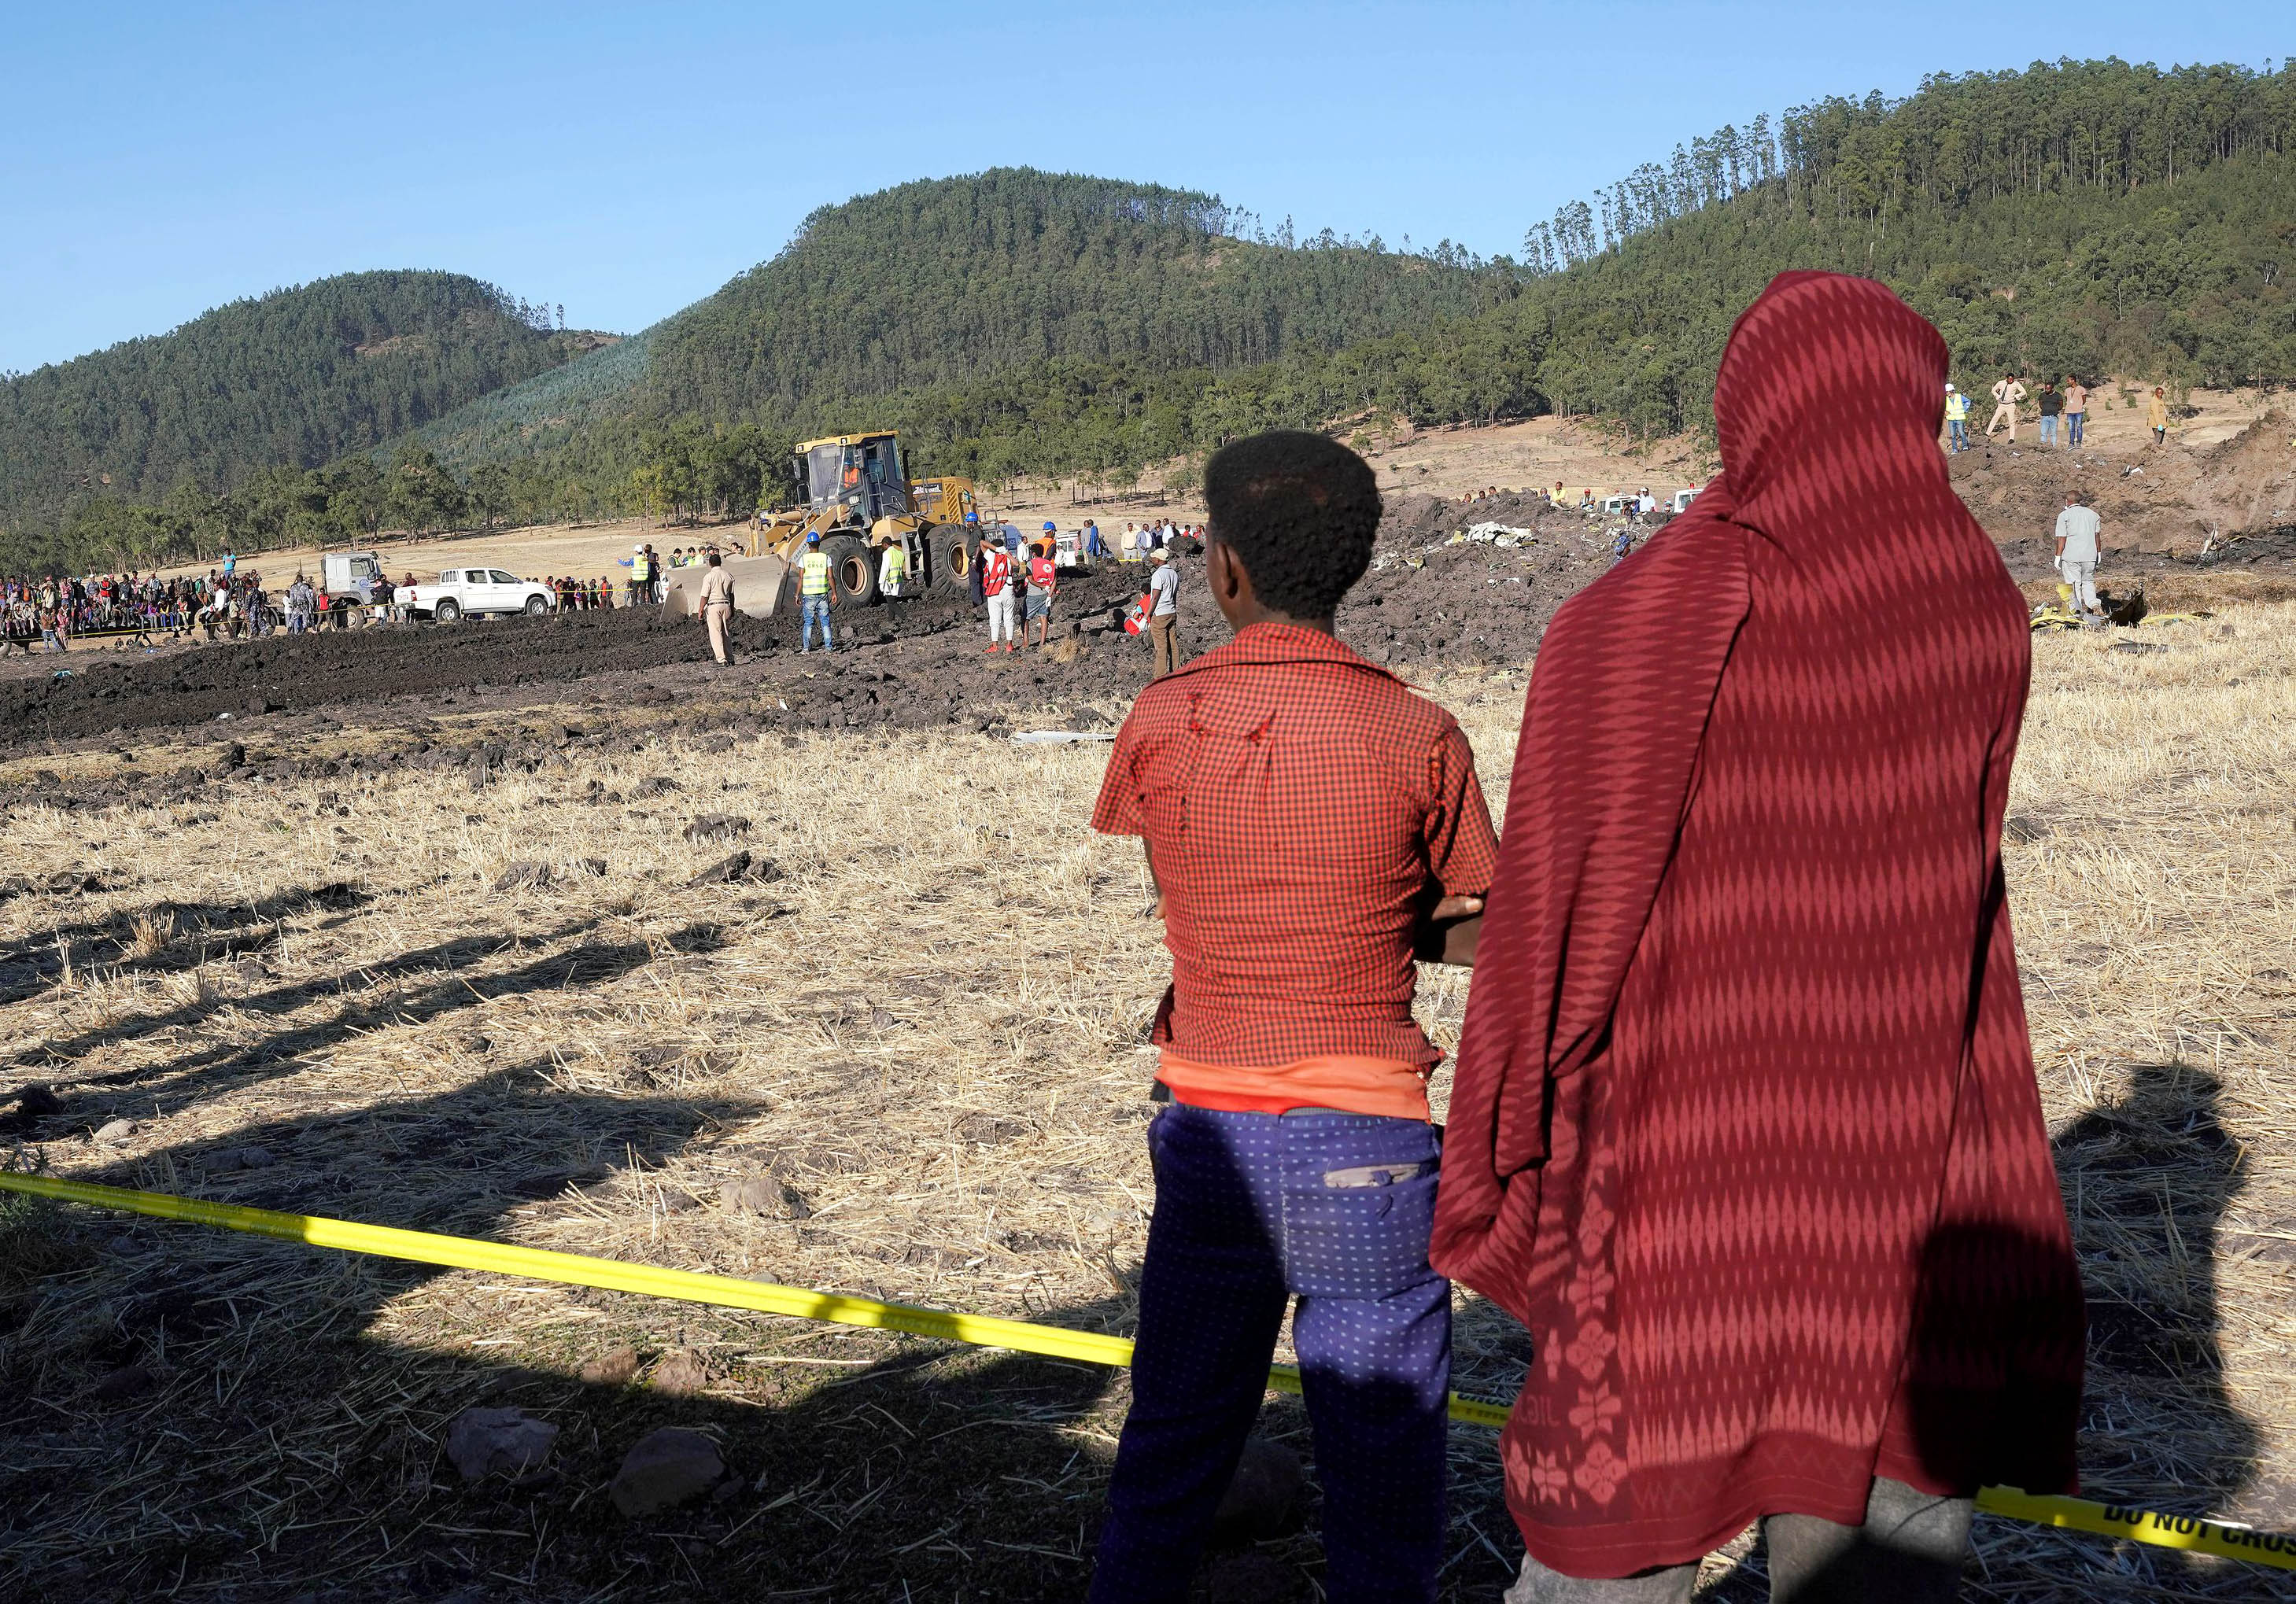 Local residents watch as rescue personnel recover debris from the crater where Ethiopian Airlines Flight 302 crashed southeast of Addis Ababa on March 10, 2019.